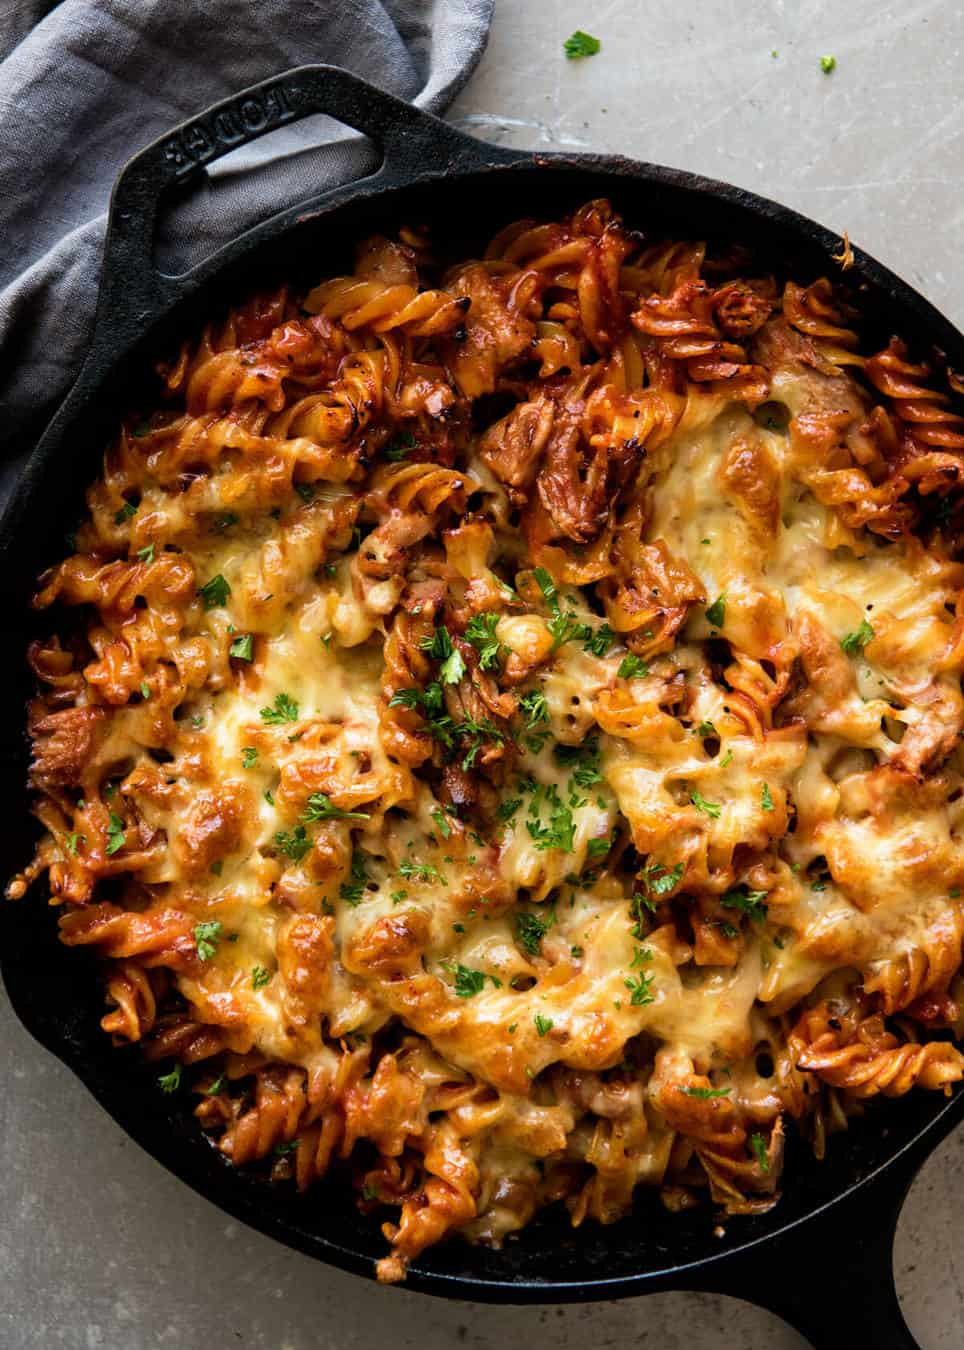 How to make tuna pasta bake with mushroom soup